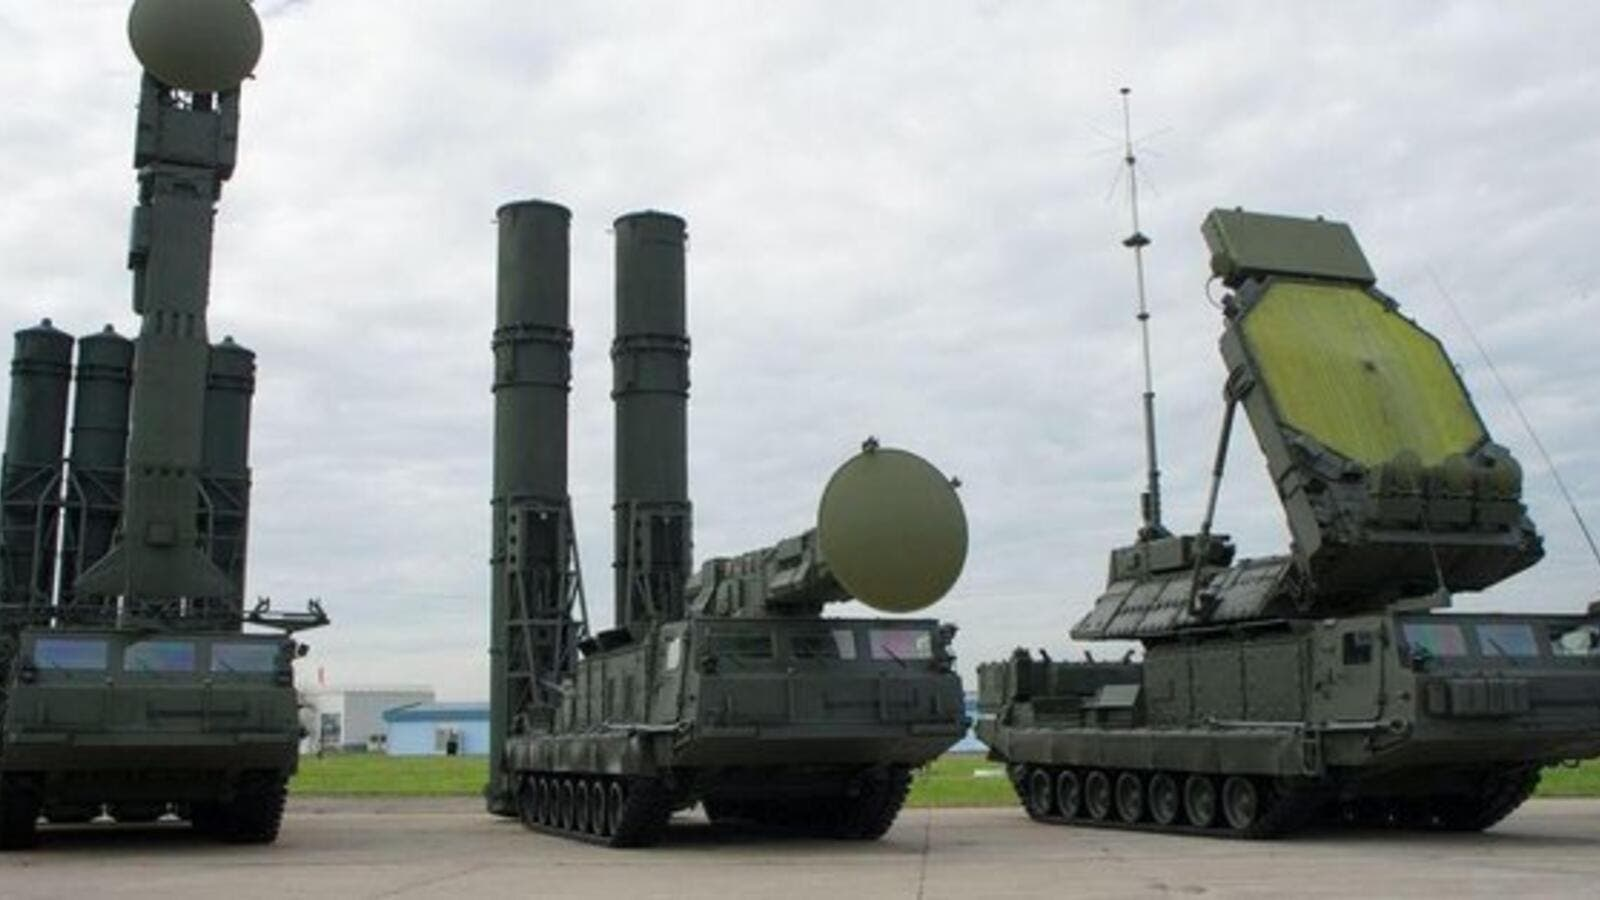 S-300 and S-400 missile defense systems (Twitter)